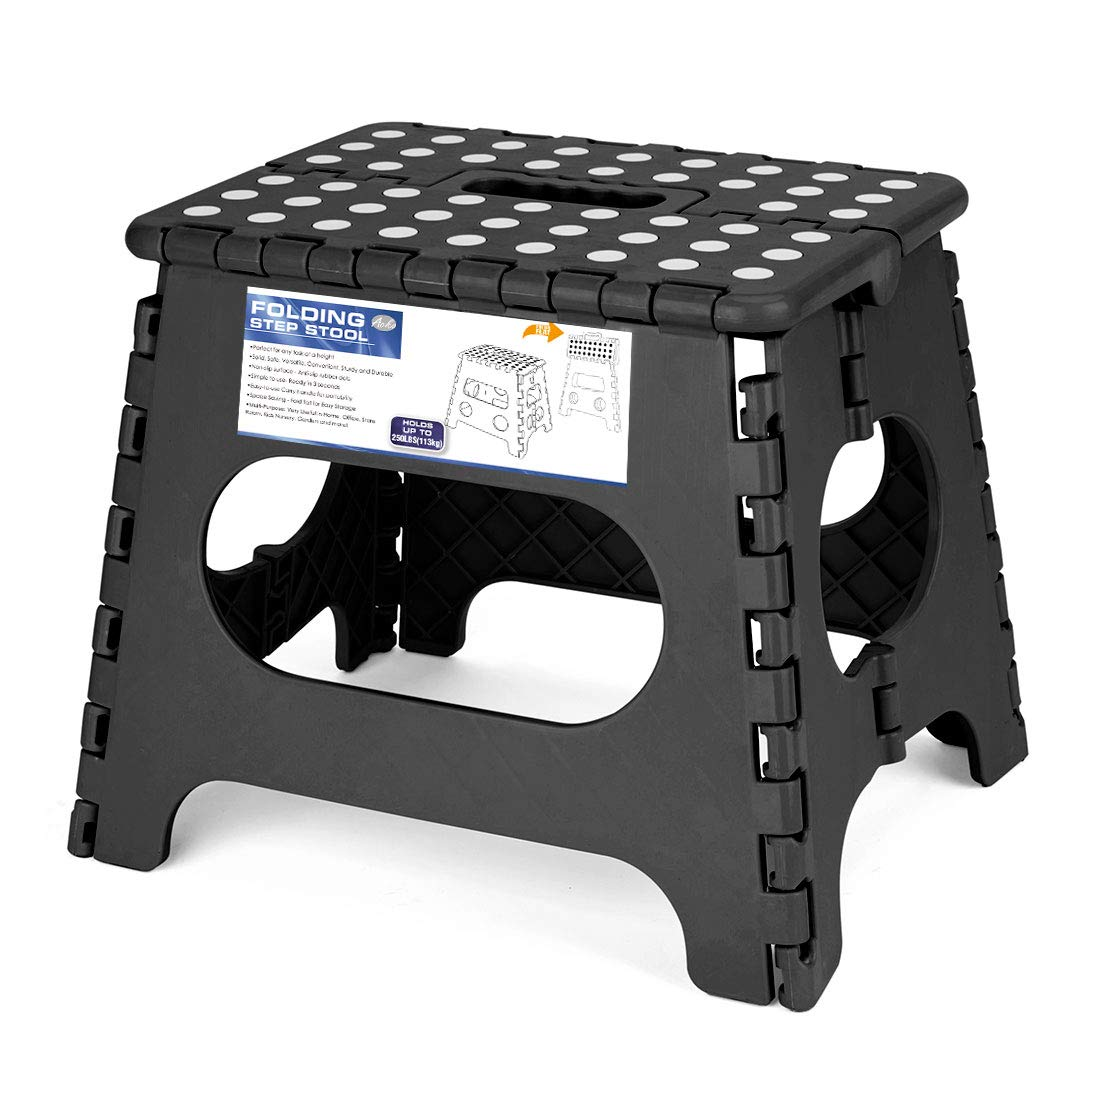 Acko 9'' x 11'' Black Folding Step Stool great for kids and adults. Holds up to 250 LBS